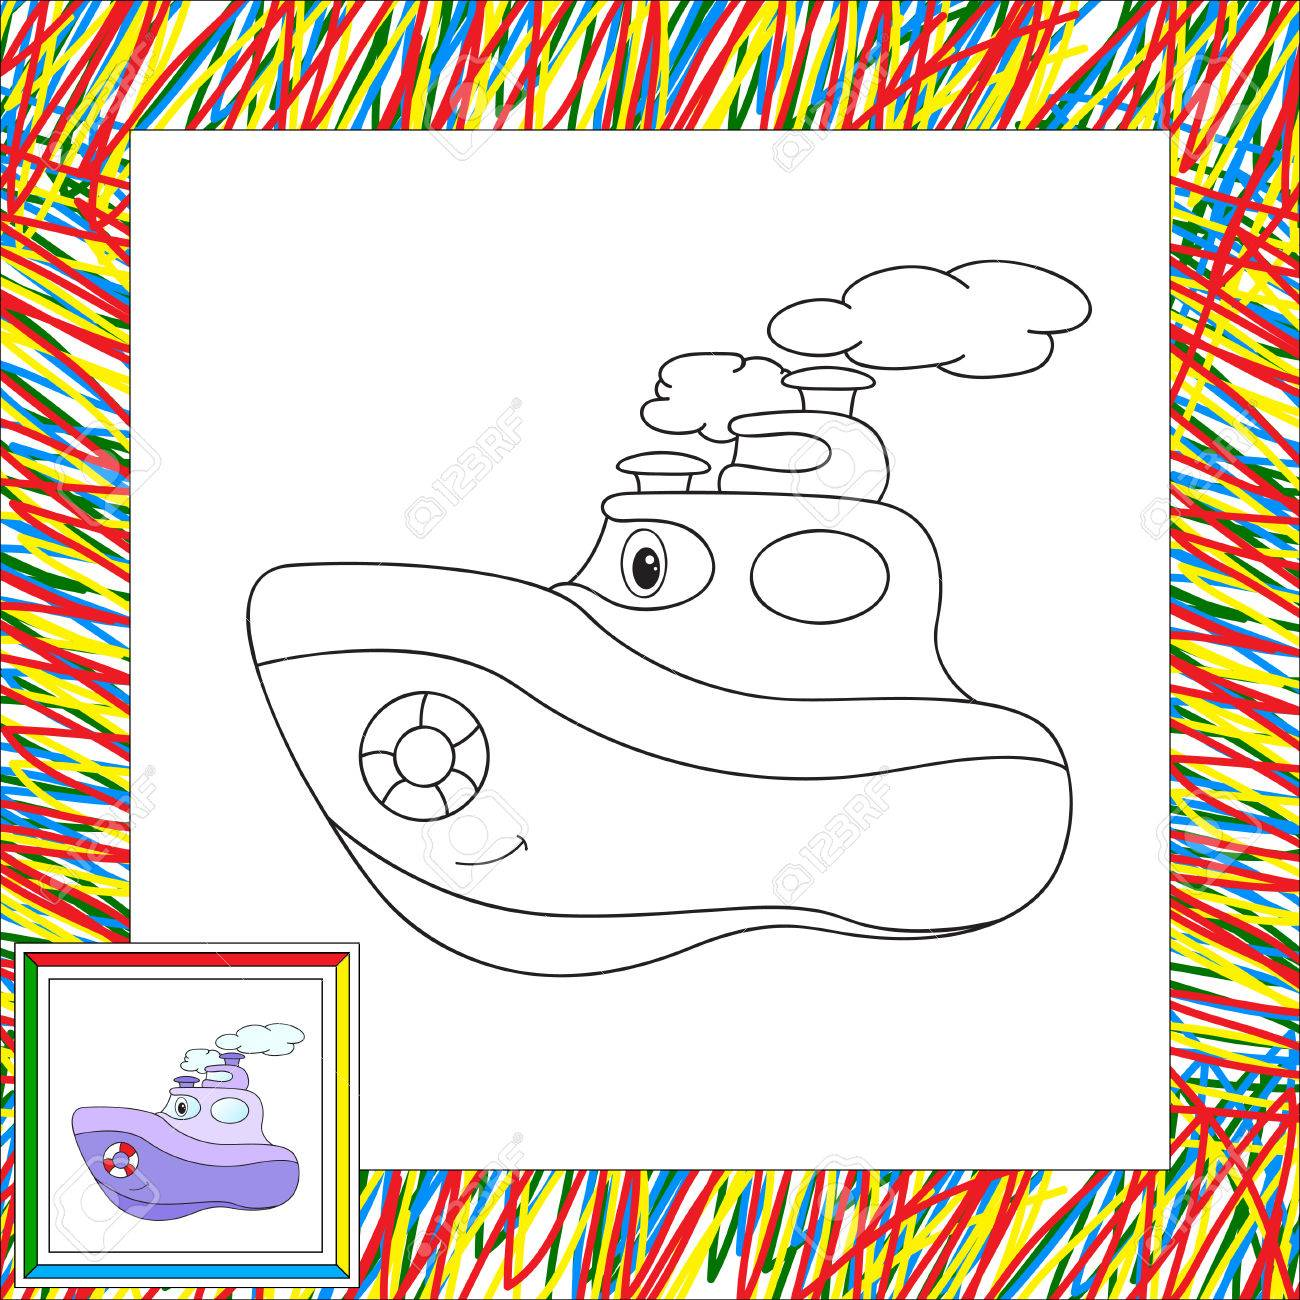 Funny Cartoon Steamship Coloring Book For Children Illustration Stock Vector